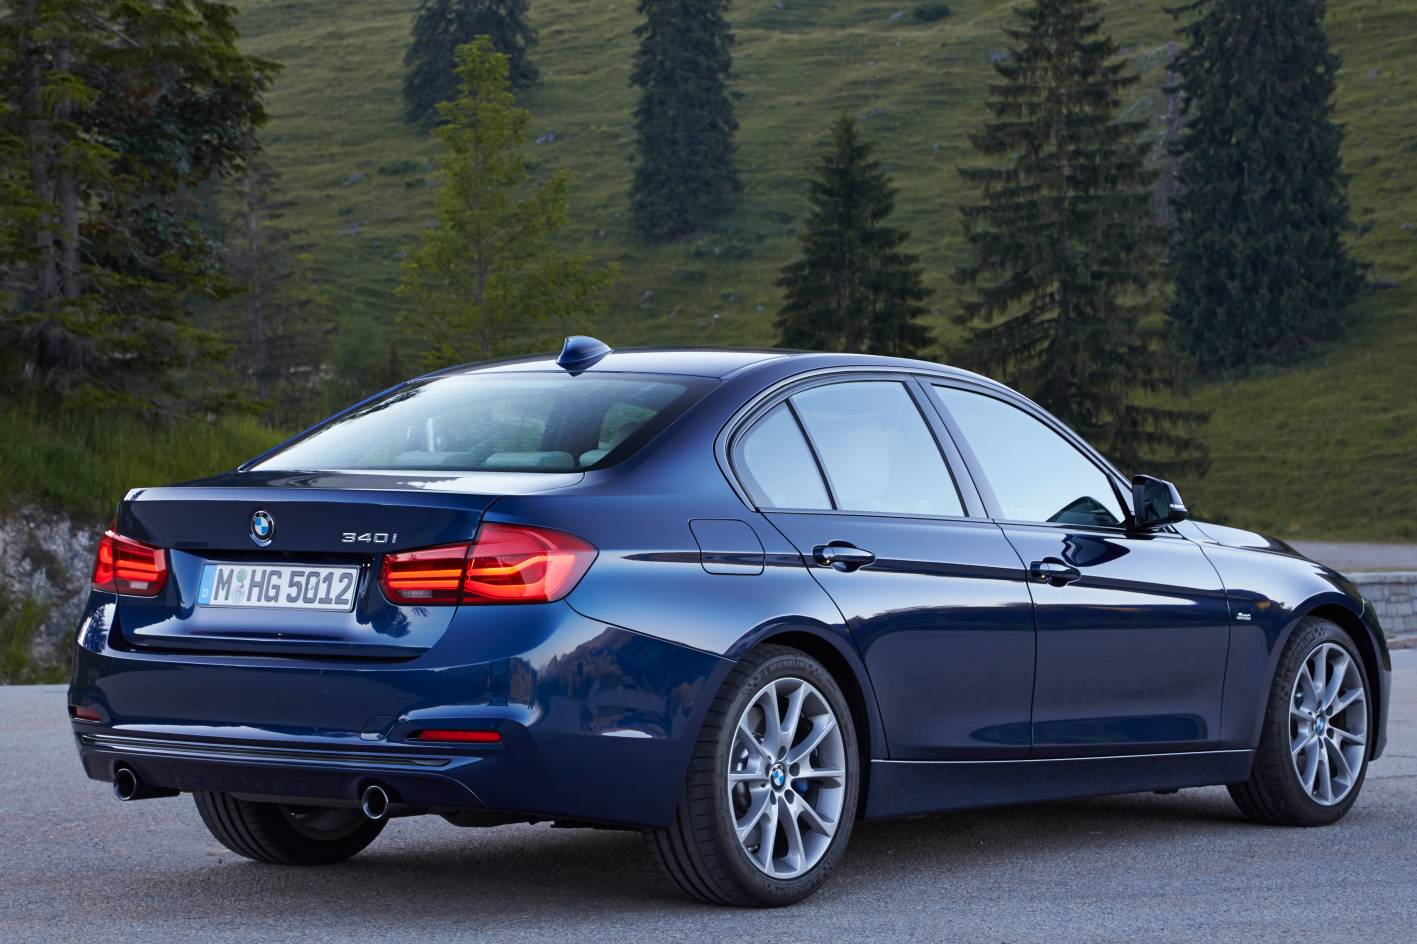 2016 Bmw 3 Series Facelift Rear Quarter